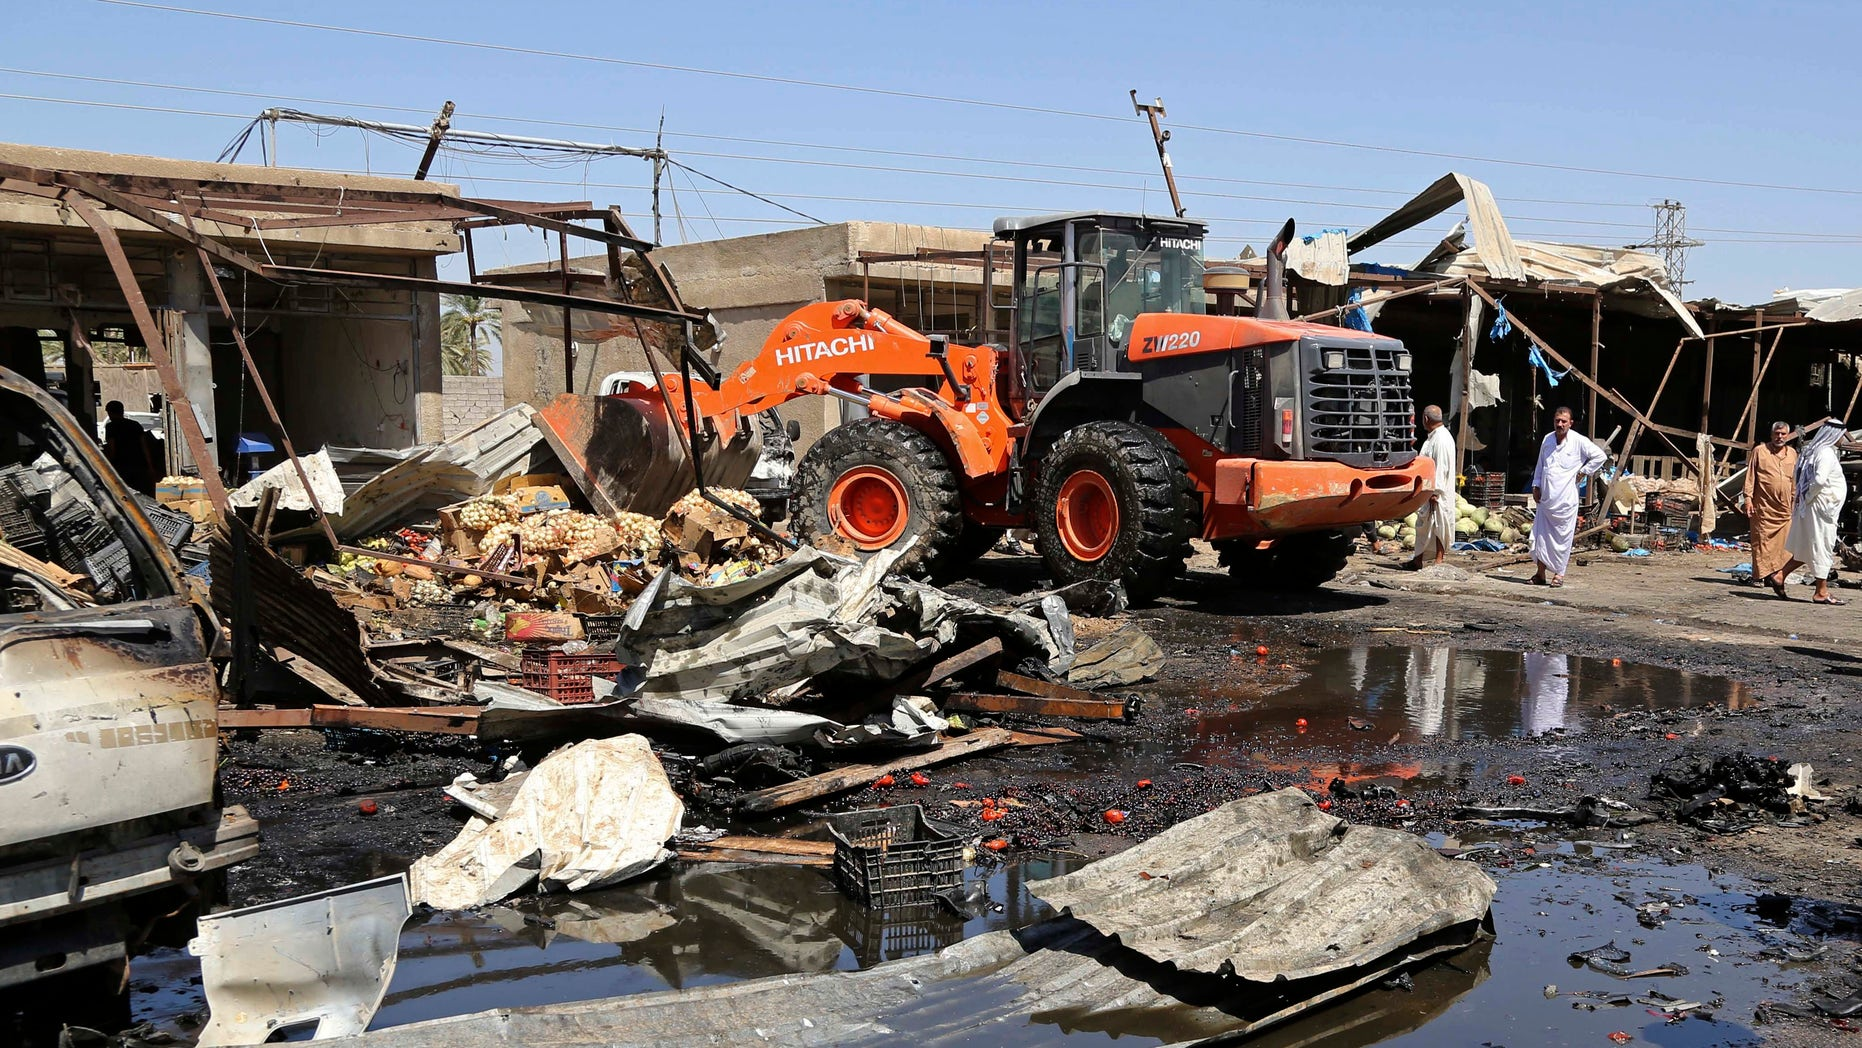 A bulldozer clears the scene of the suicide car bombing.